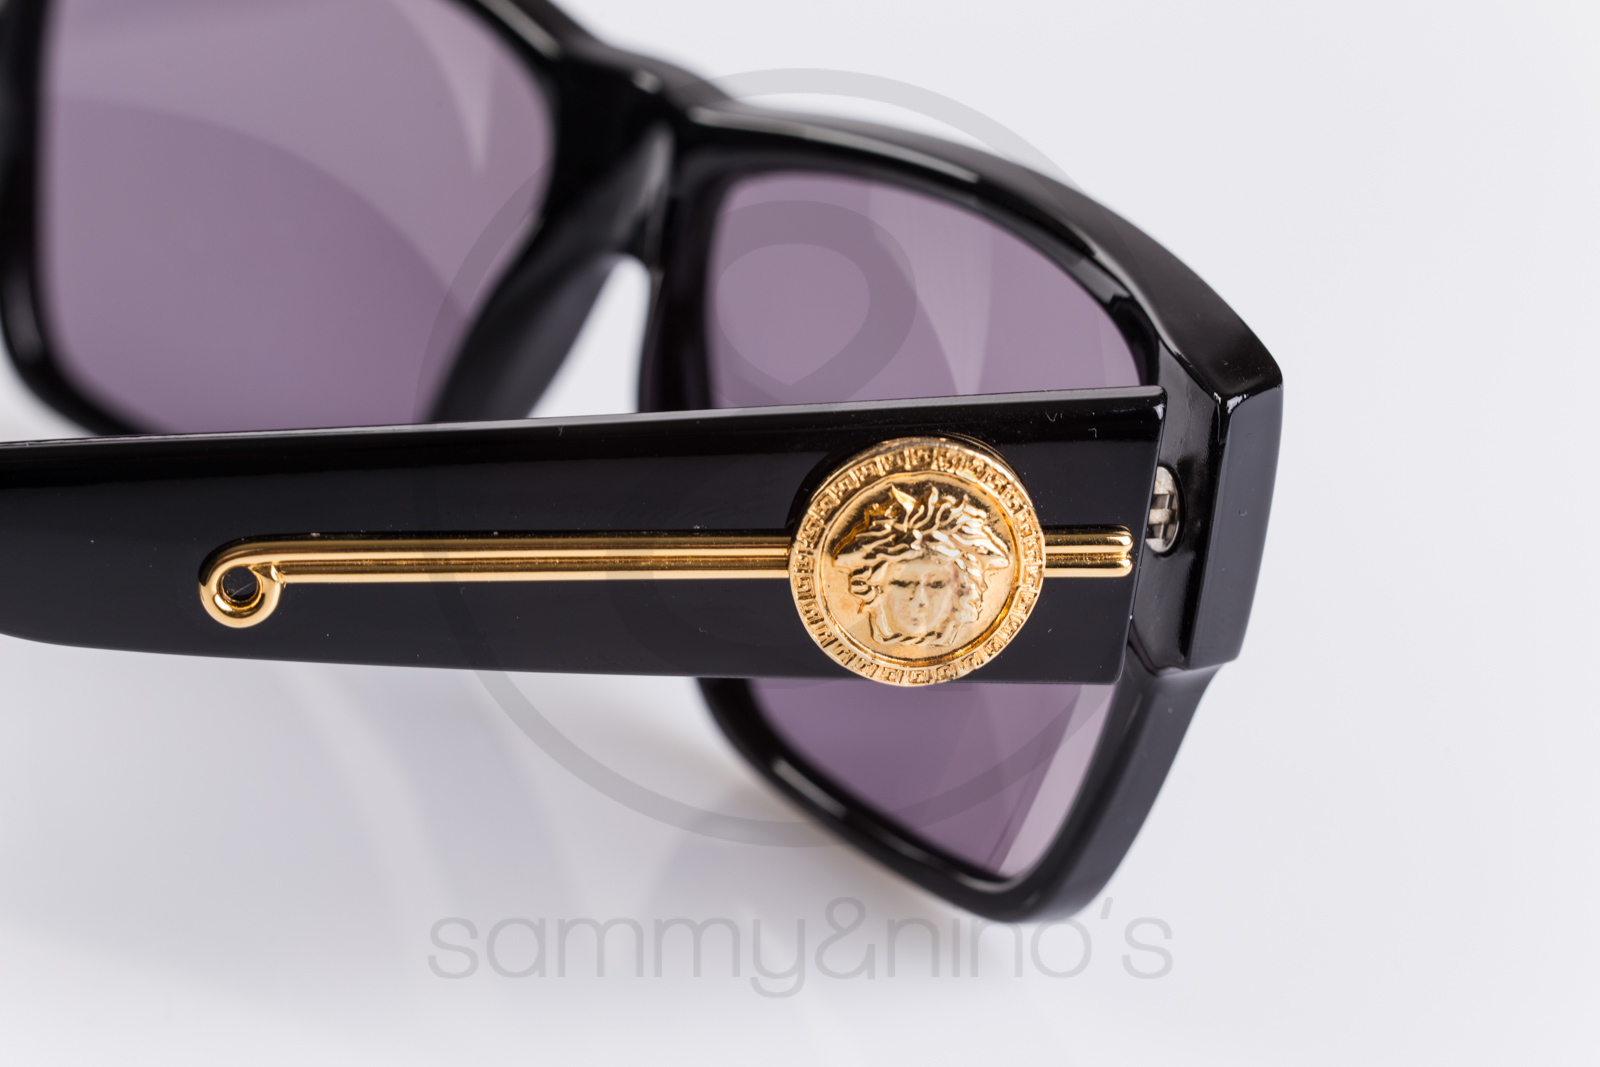 c78a5c3afcf Previous  Next. HomeSOLD OUTGianni Versace 372 dm 852